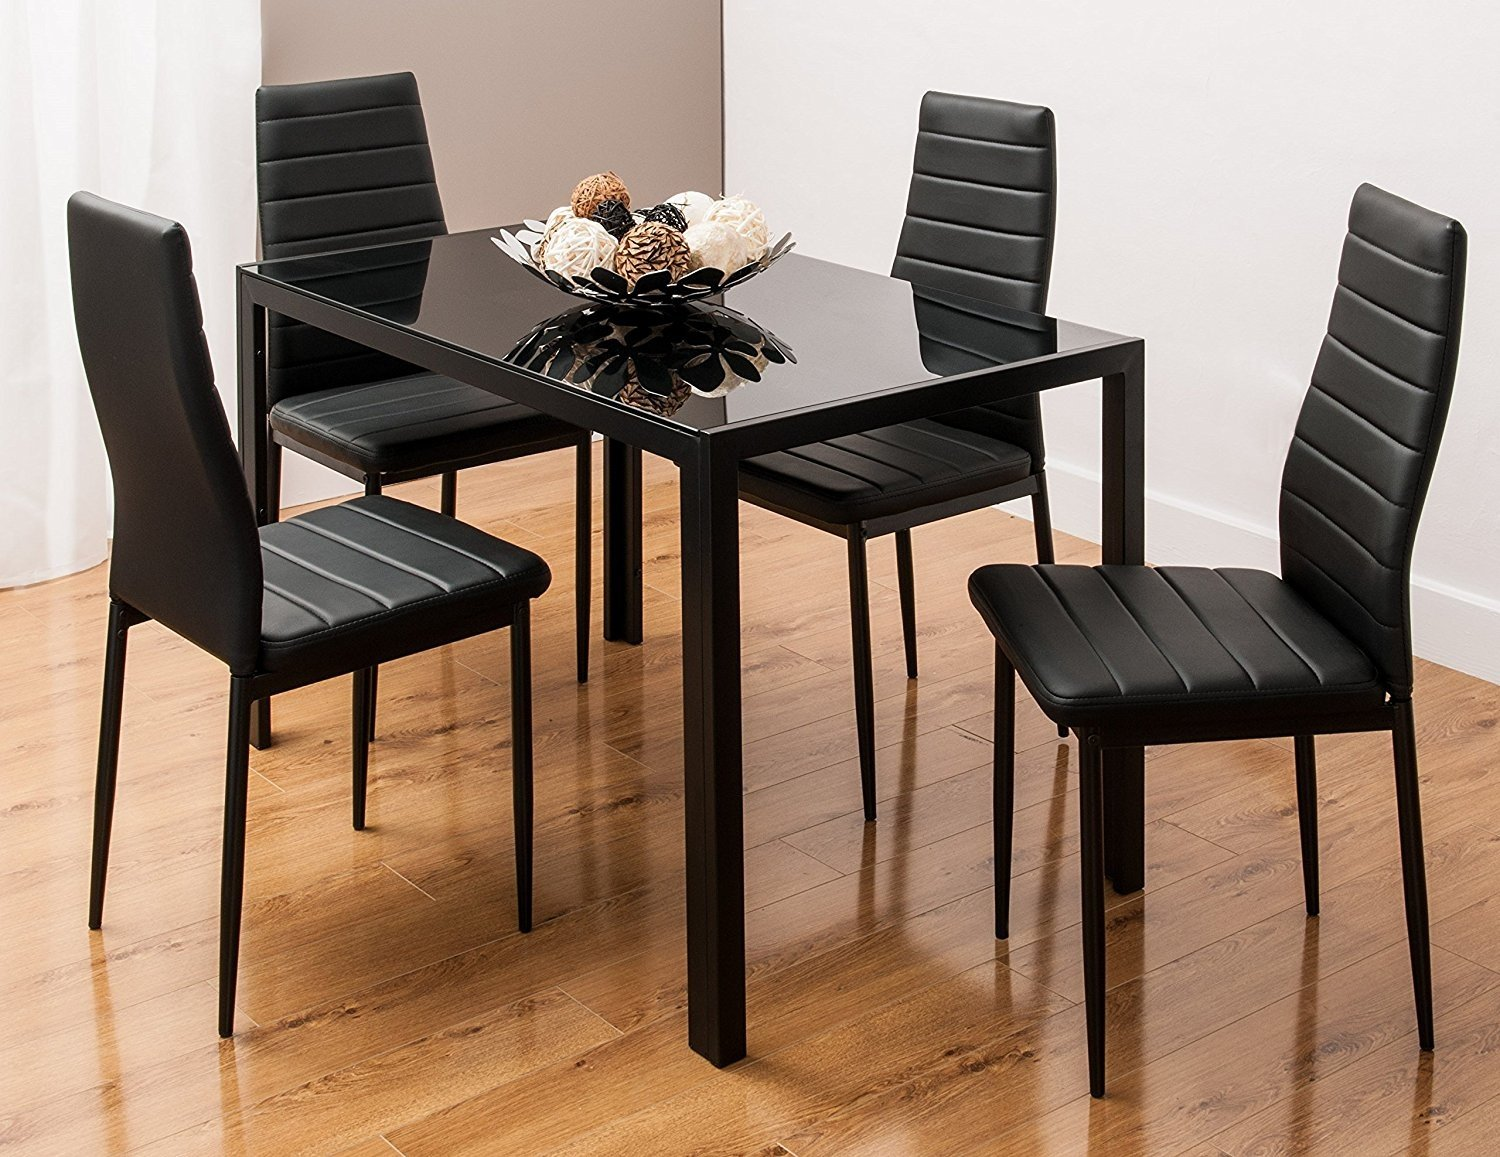 Glass Dining Table Set with 4 Faux Leather Ribbed Chairs Black/White by BY SMARTDESIGNFURNISHINGS (Black) SMARTDESIGNFUNISHINGS